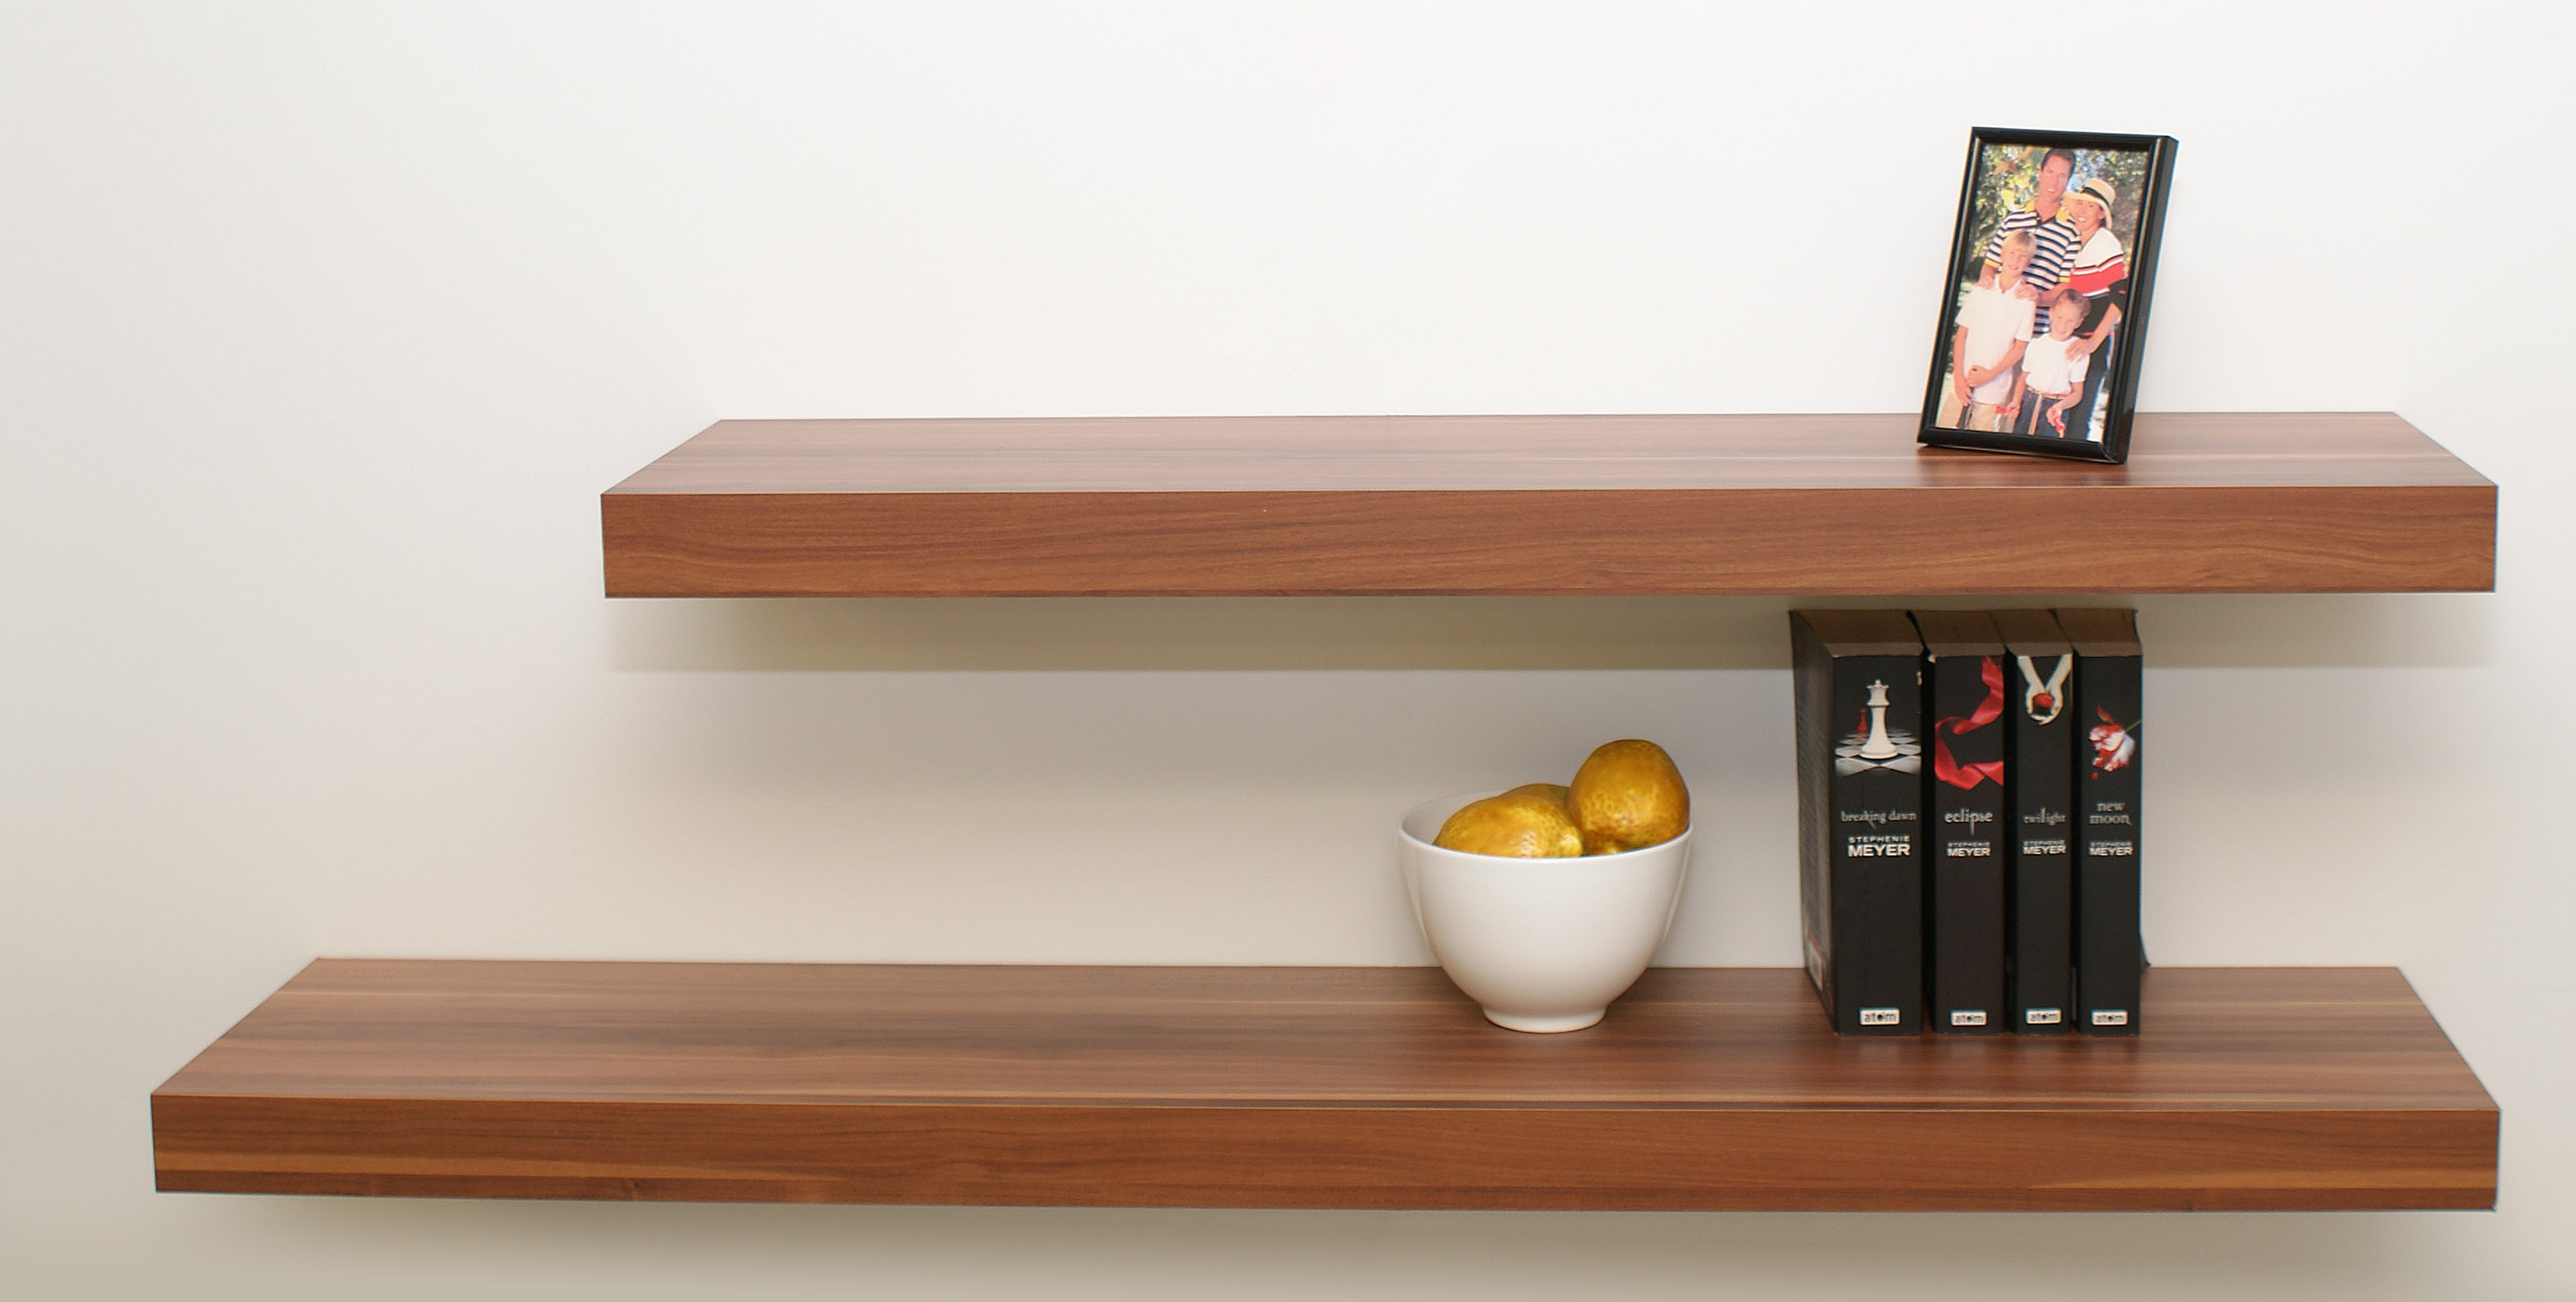 timber shop sony shelving deal double dsc walnut shelves shelf floating metallic the shelfs